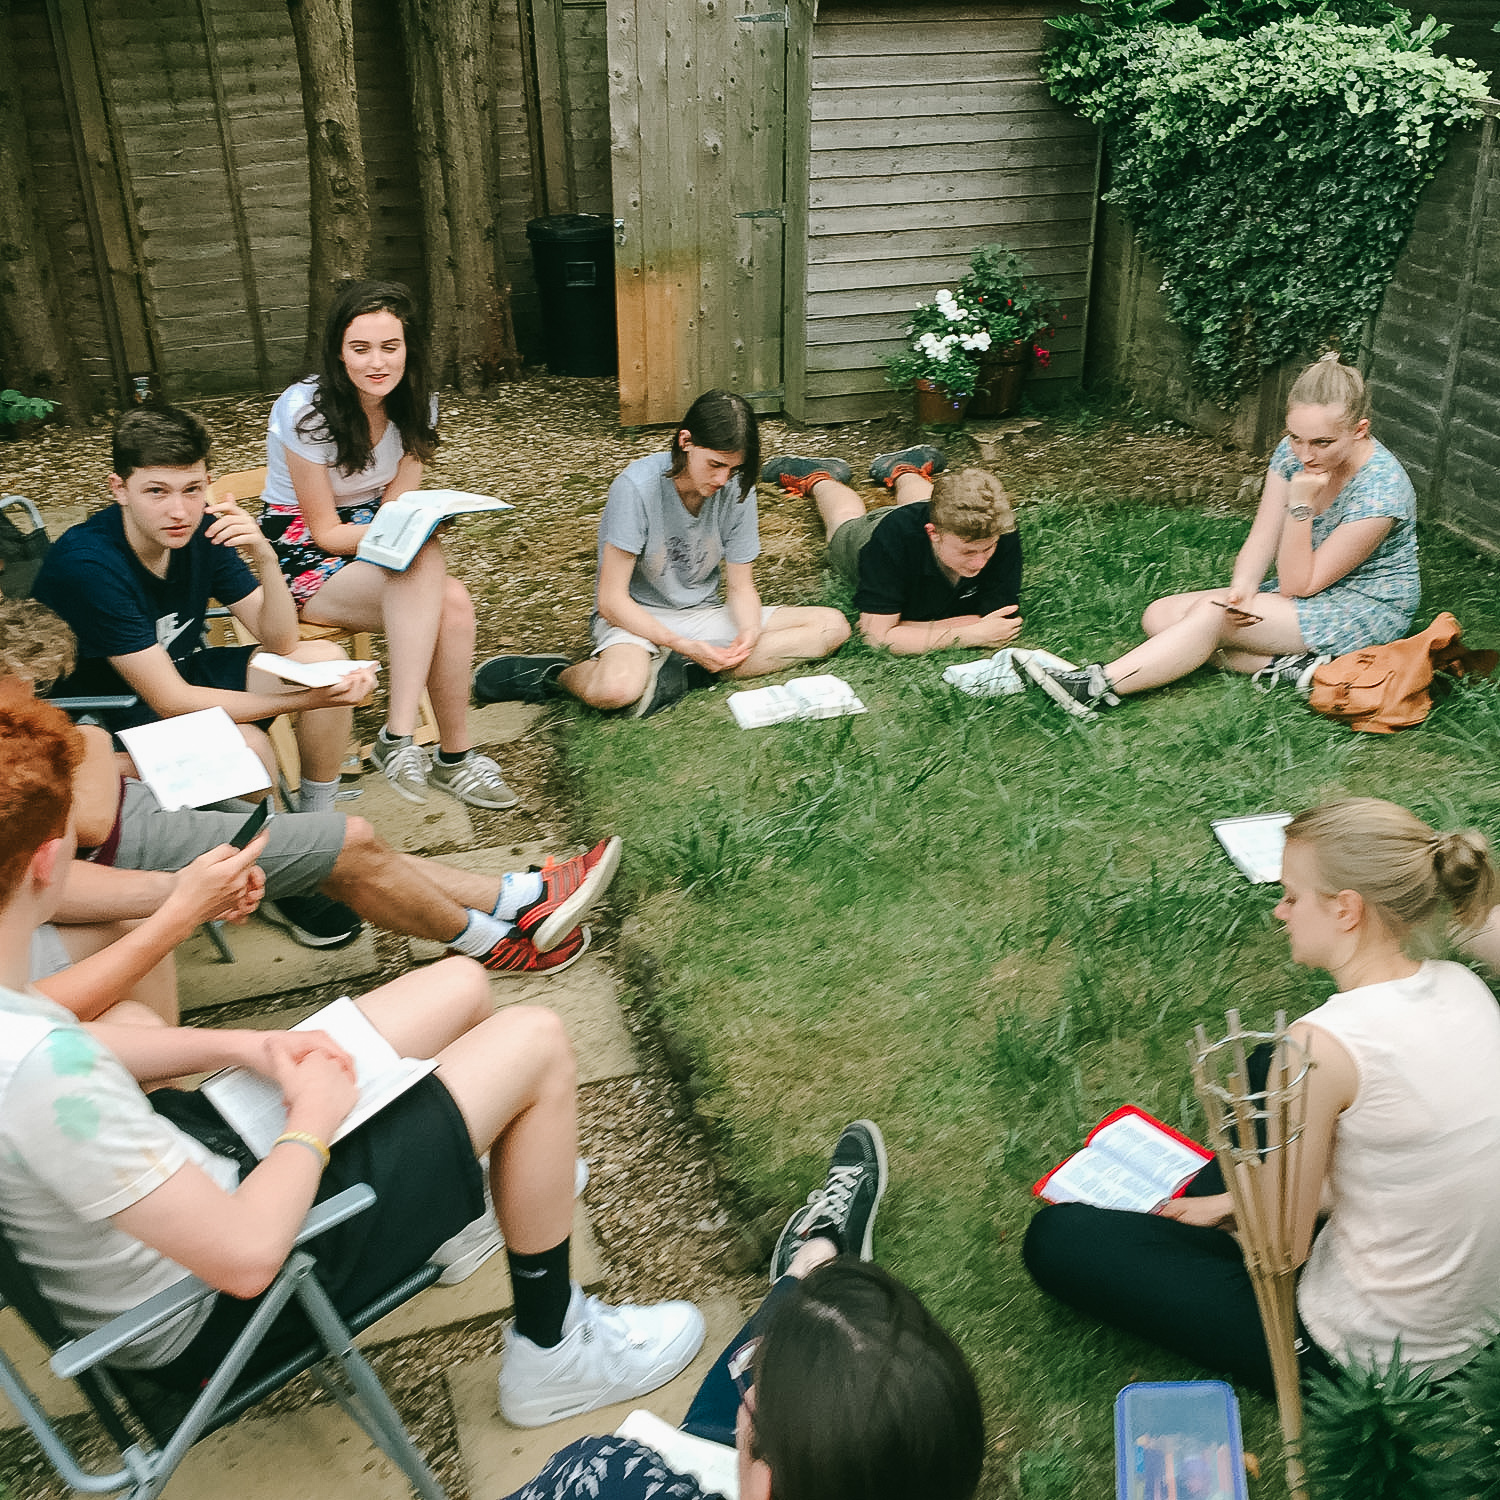 Youth small groups - Explore Jesus, share life, eat food! Sound good? Find out about joining a small group for your year group by emailing youth@stjohnsharborne.orgTuesday evenings - Year 7, 10, 11 & 13 Wednesday evenings - Year 8 & 9 Thursday evenings - Year 12